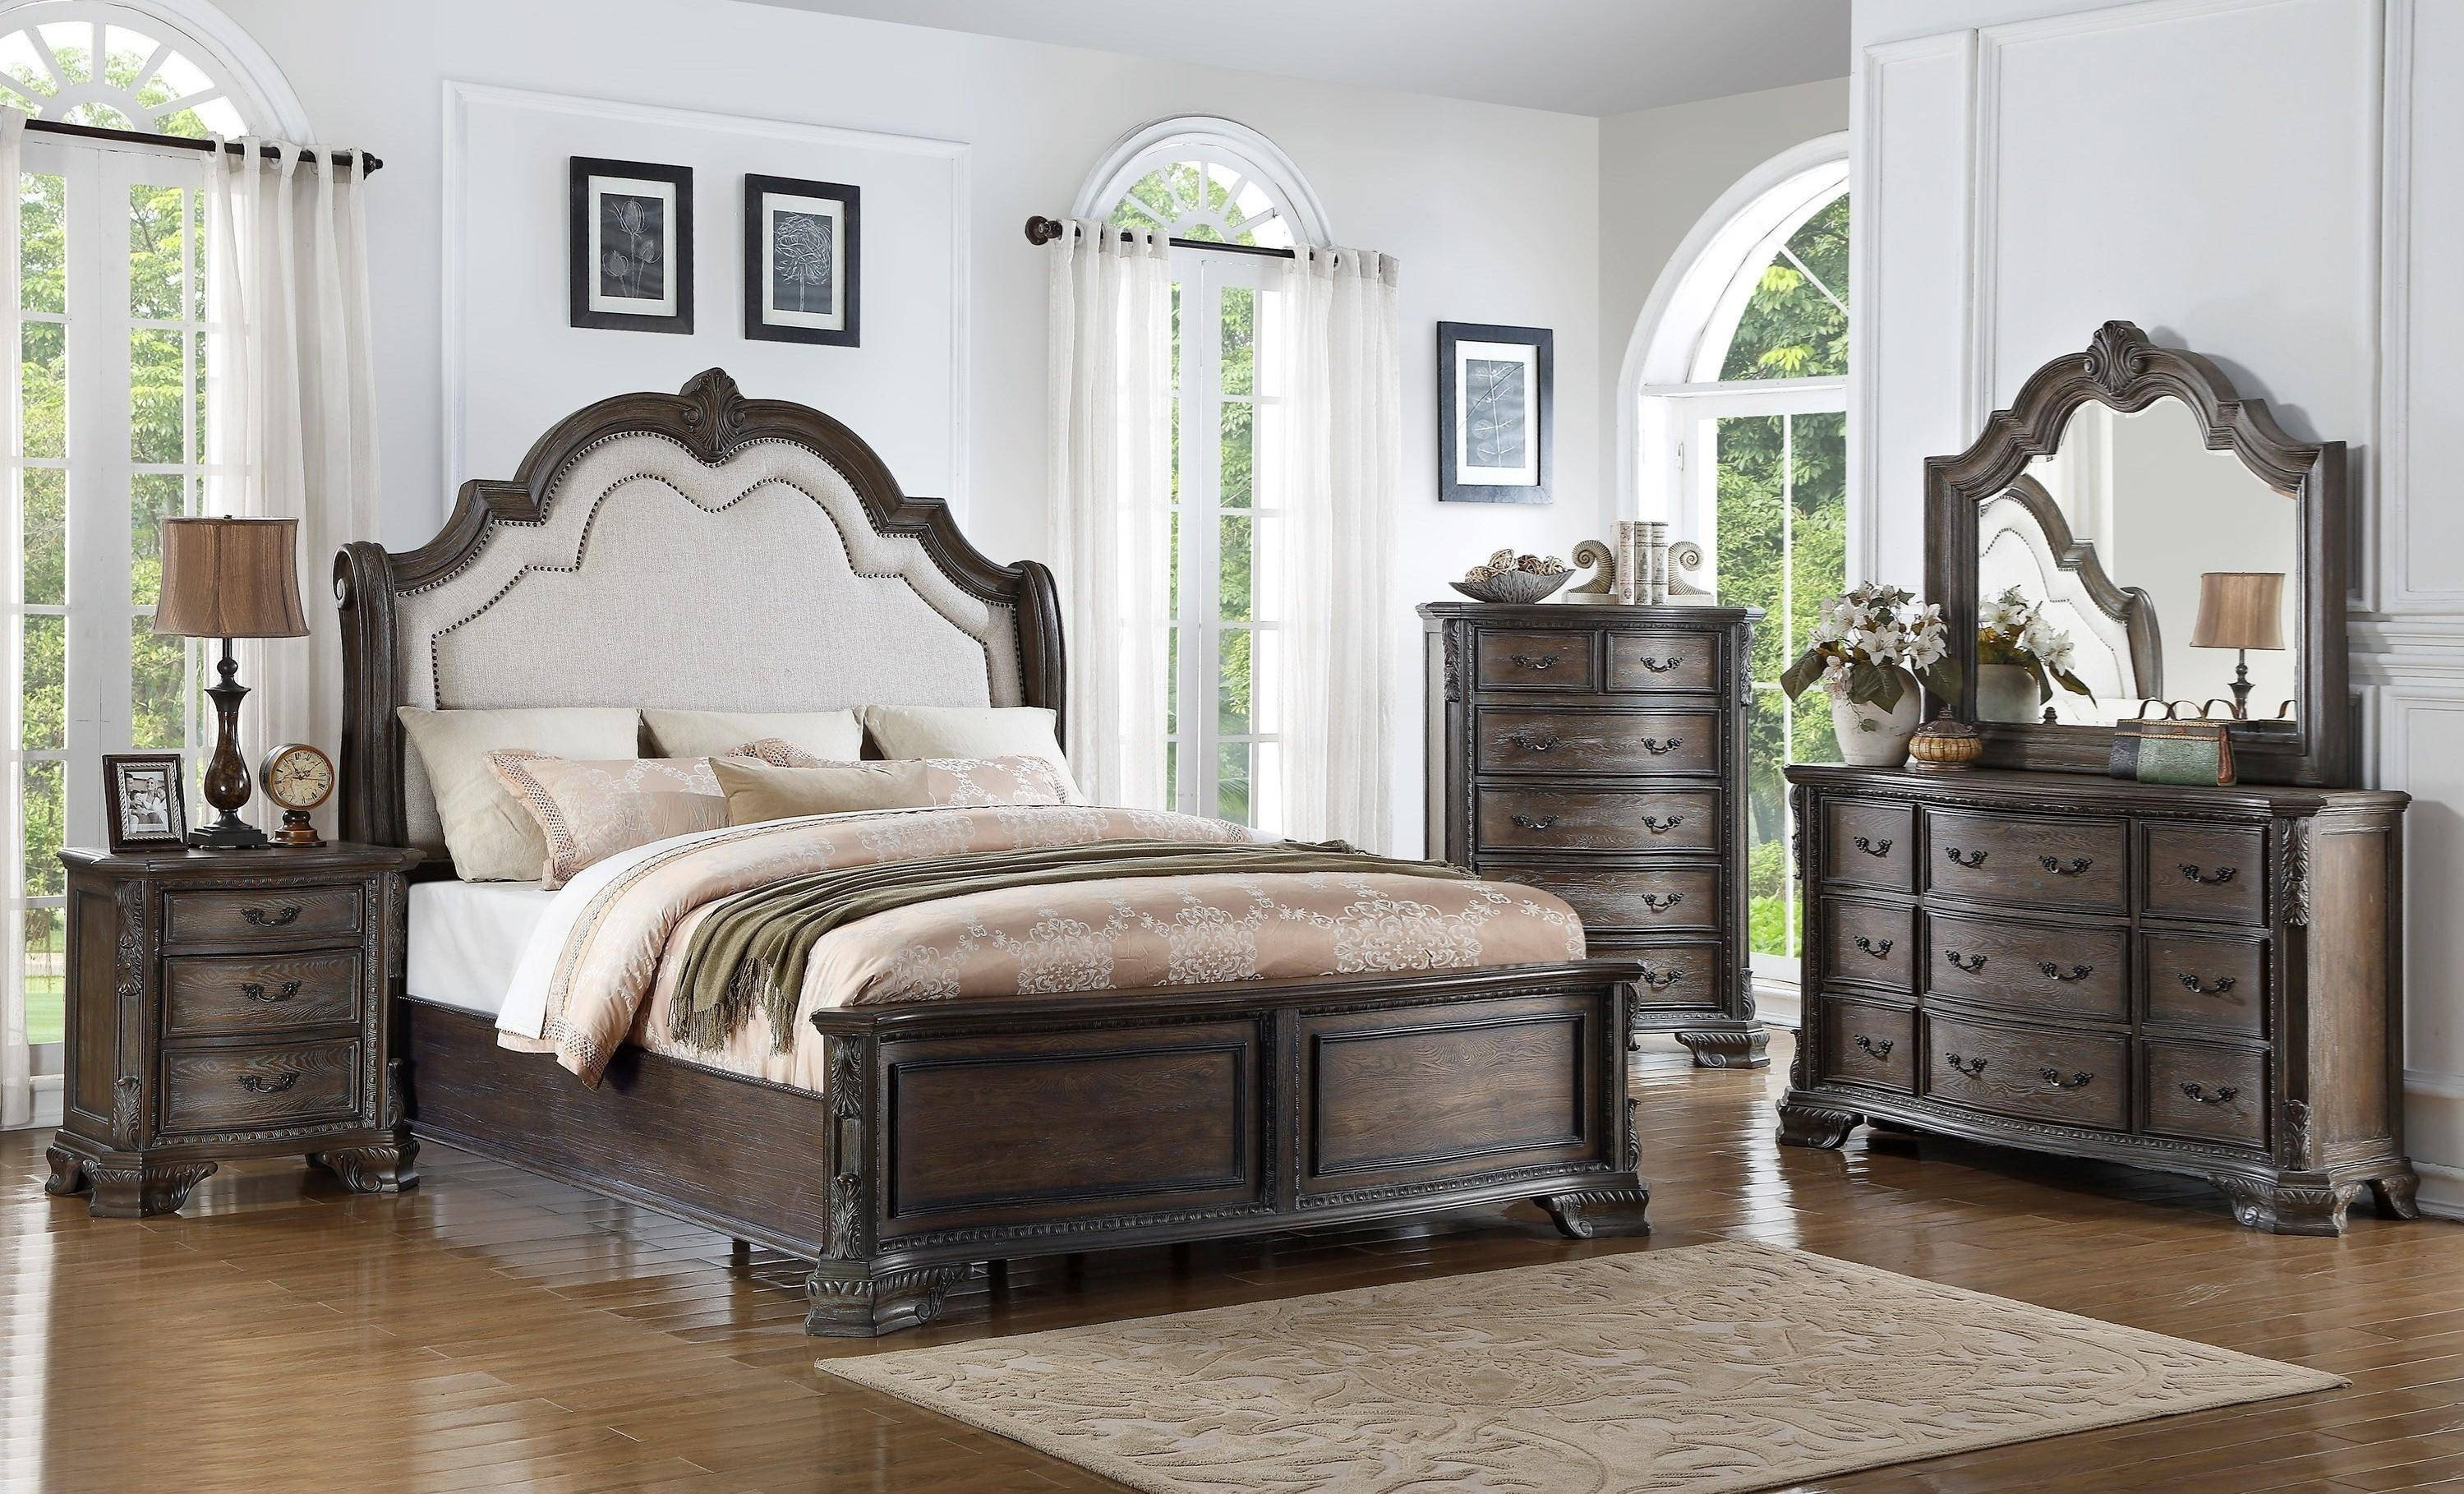 Rustic King Bedroom Set Lovely Crown Mark B1120 Sheffield Queen Panel Bed In Gray Fabric